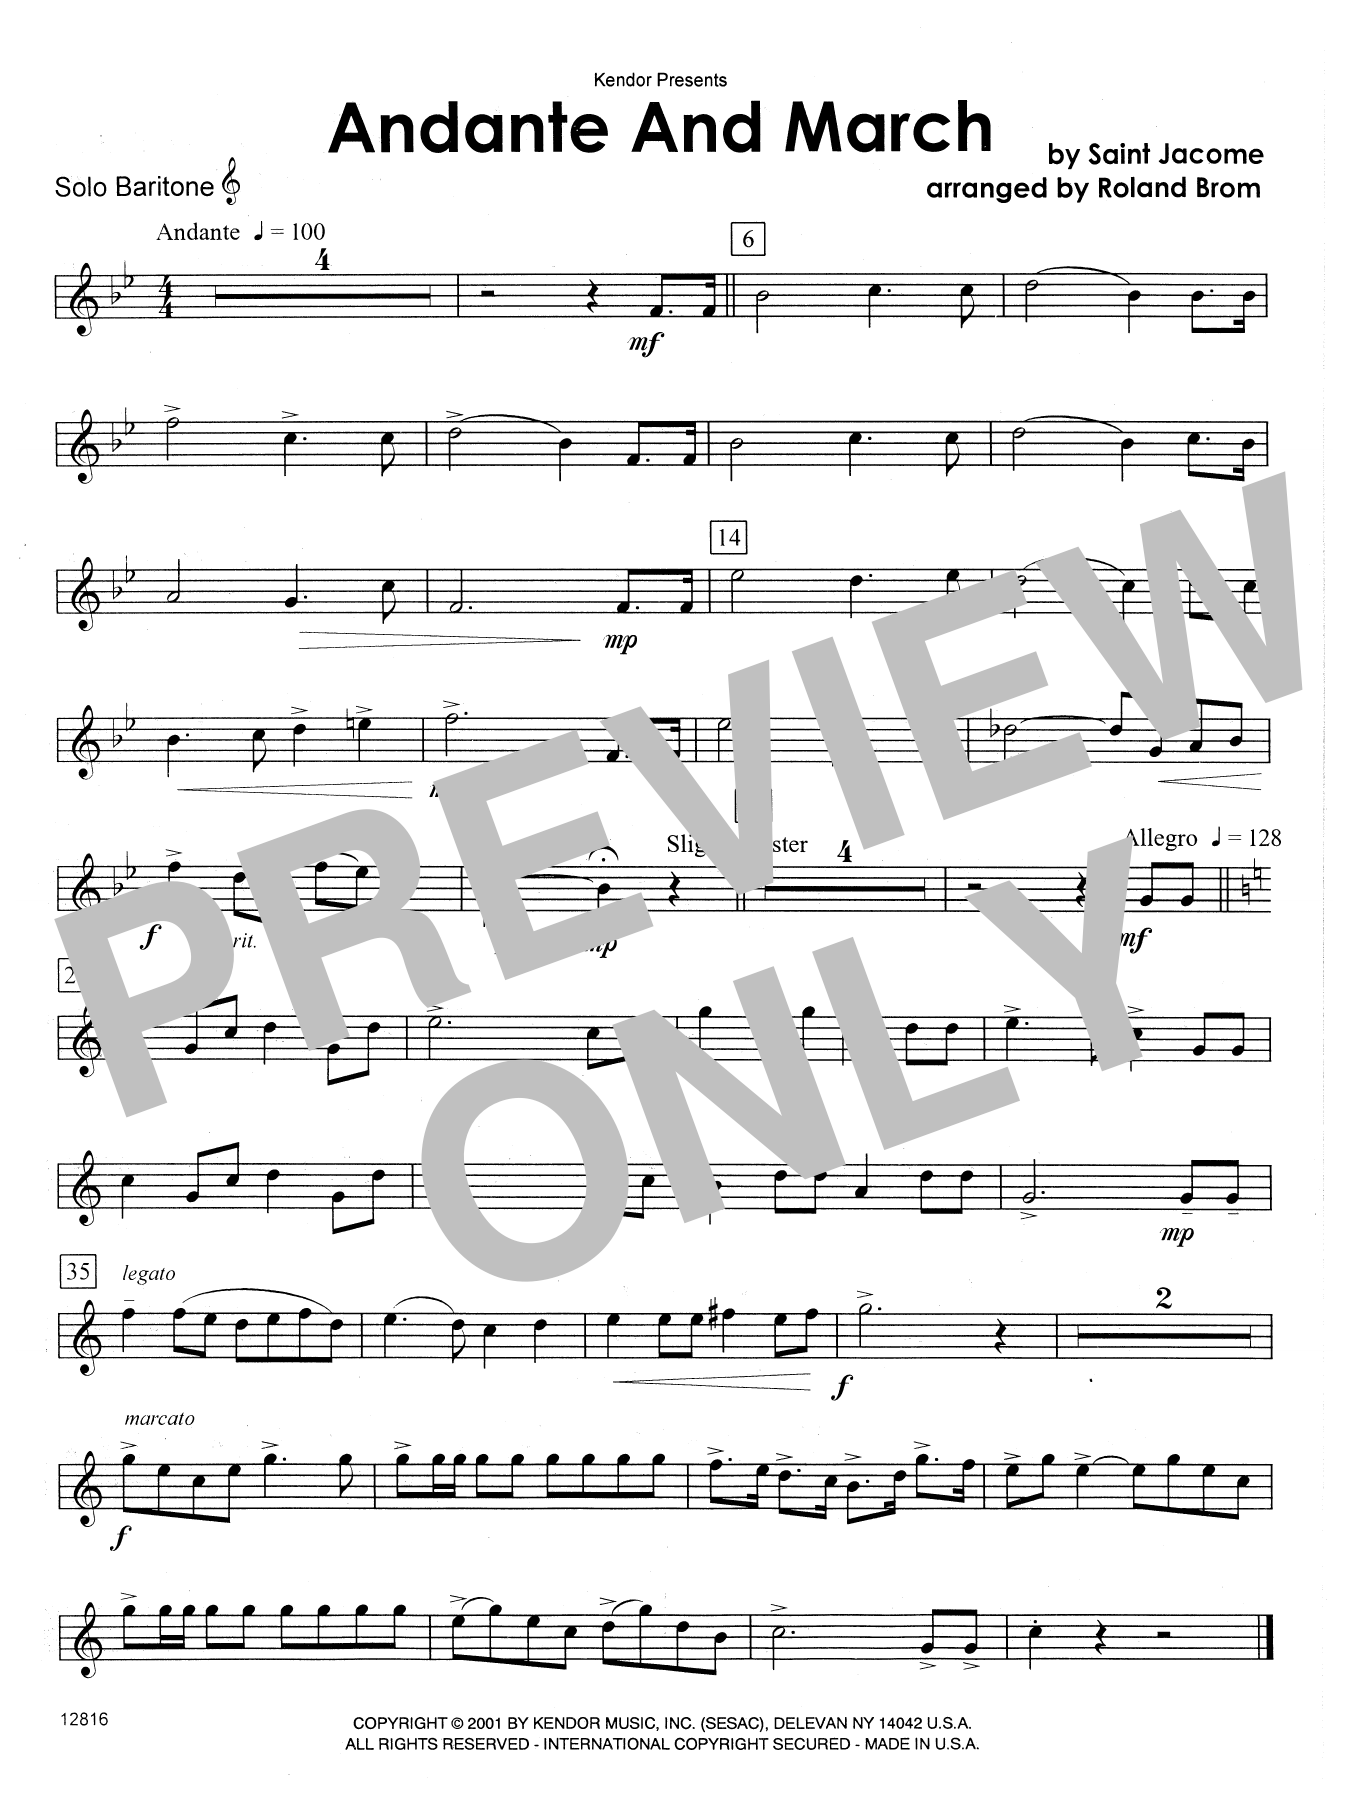 Andante And March - Solo Baritone T.C. Sheet Music